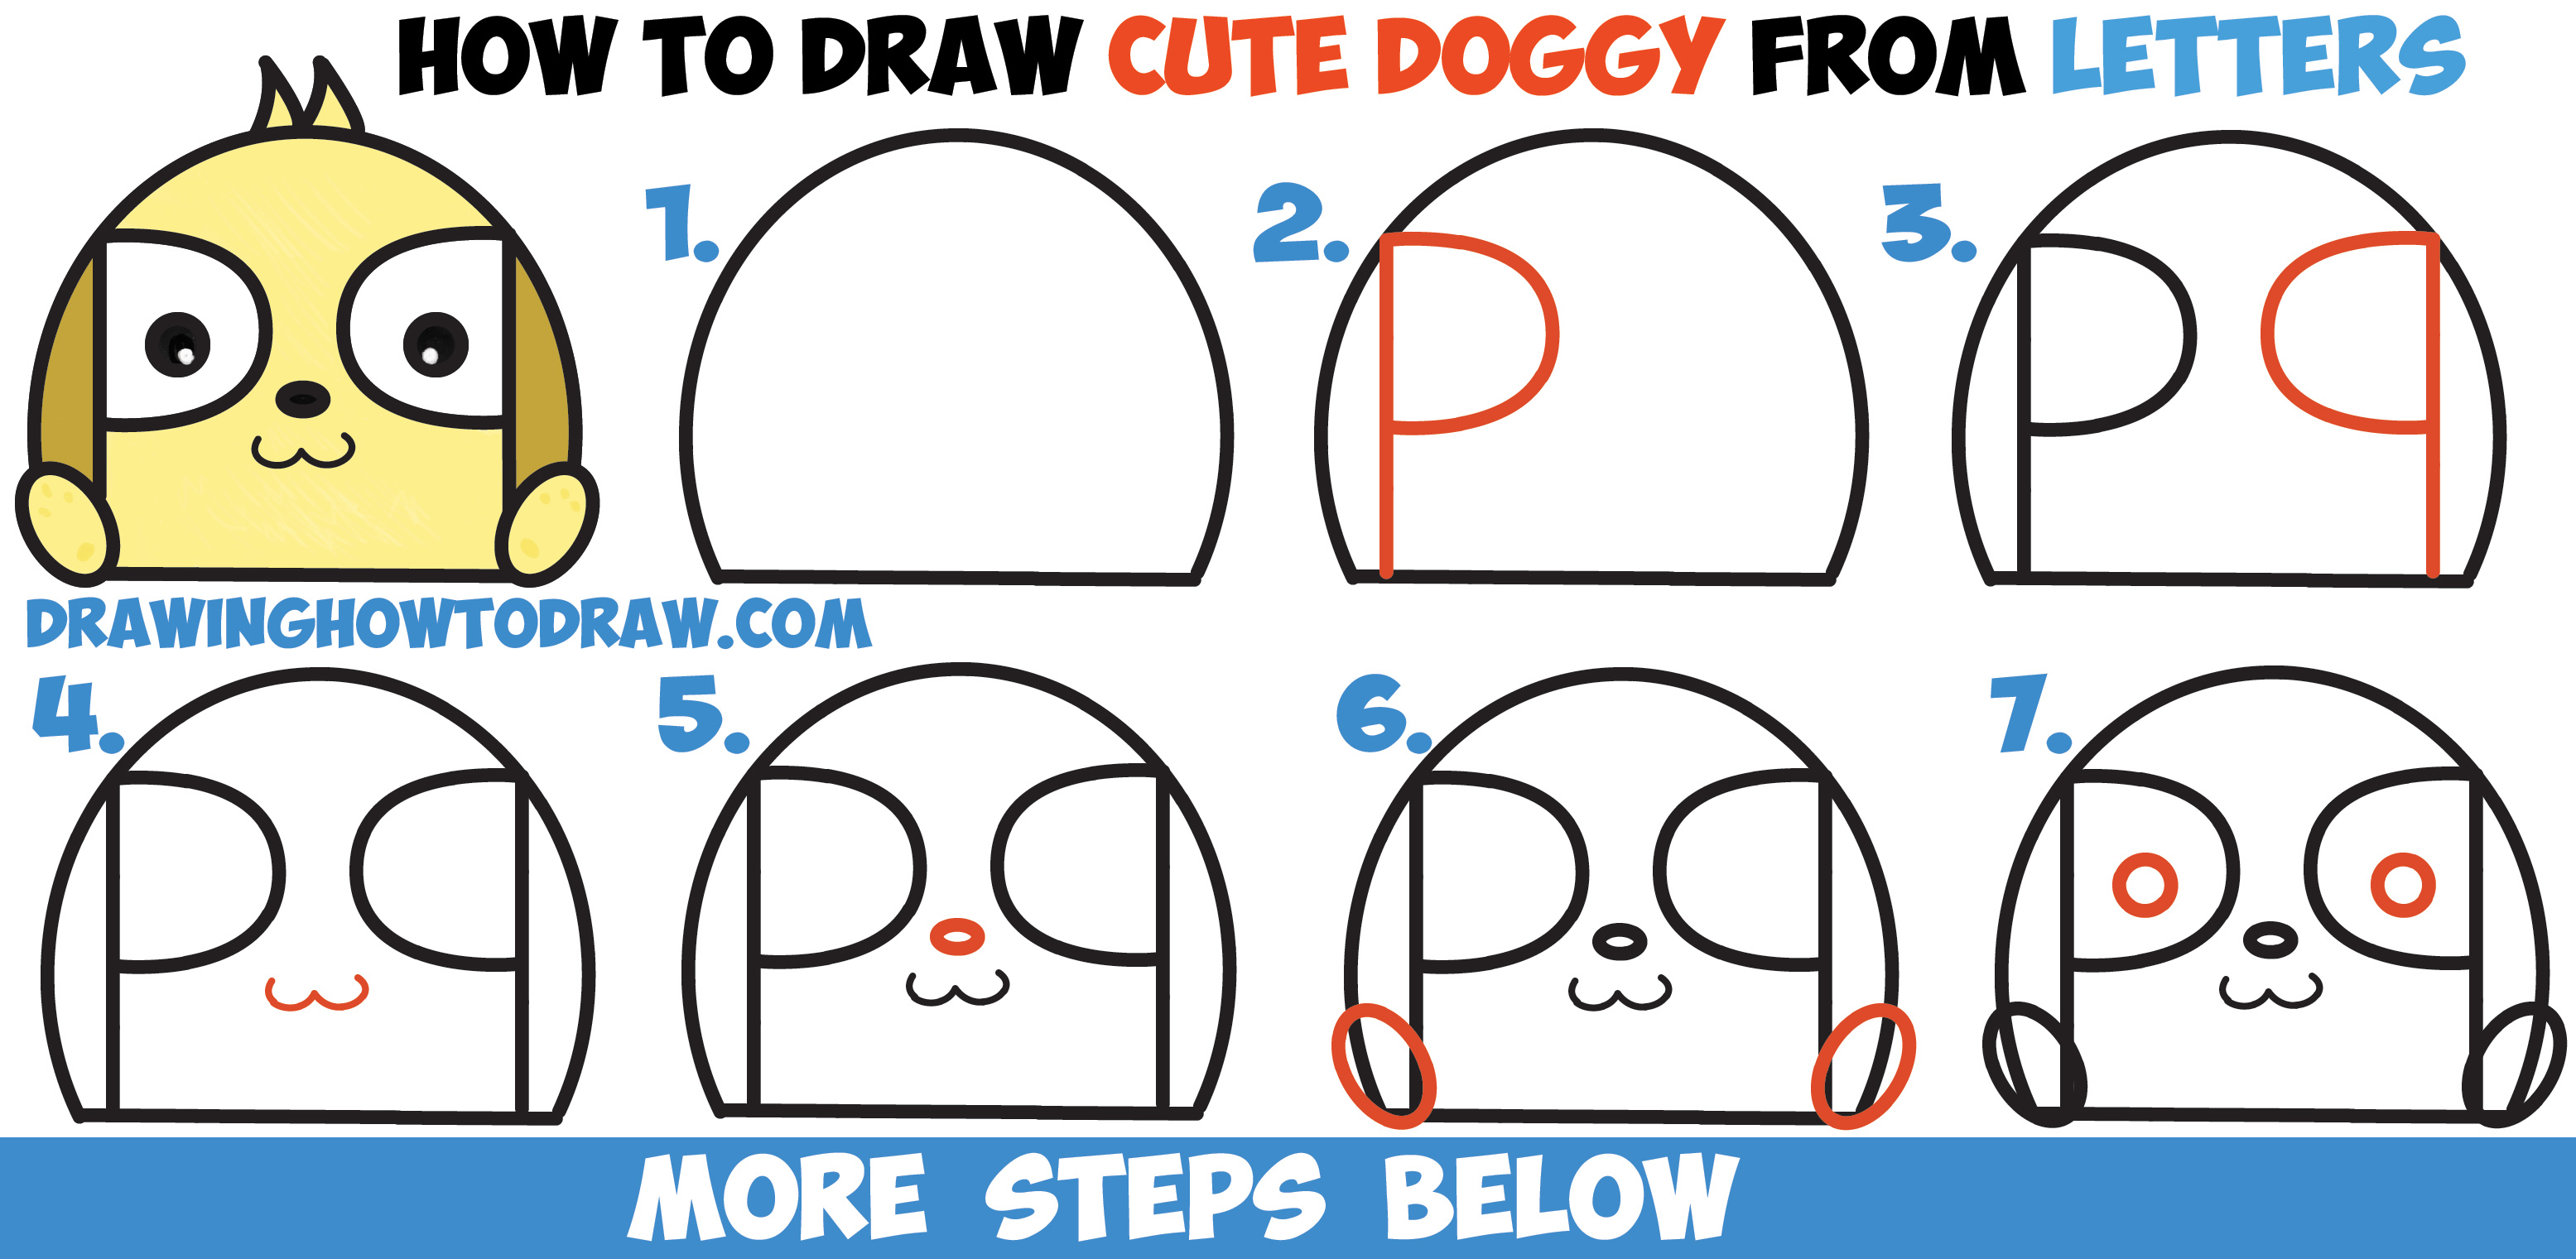 How to Draw a Cute Cartoon Puppy Doggy from Letters Easy Step by Step Drawing Lesson for Children